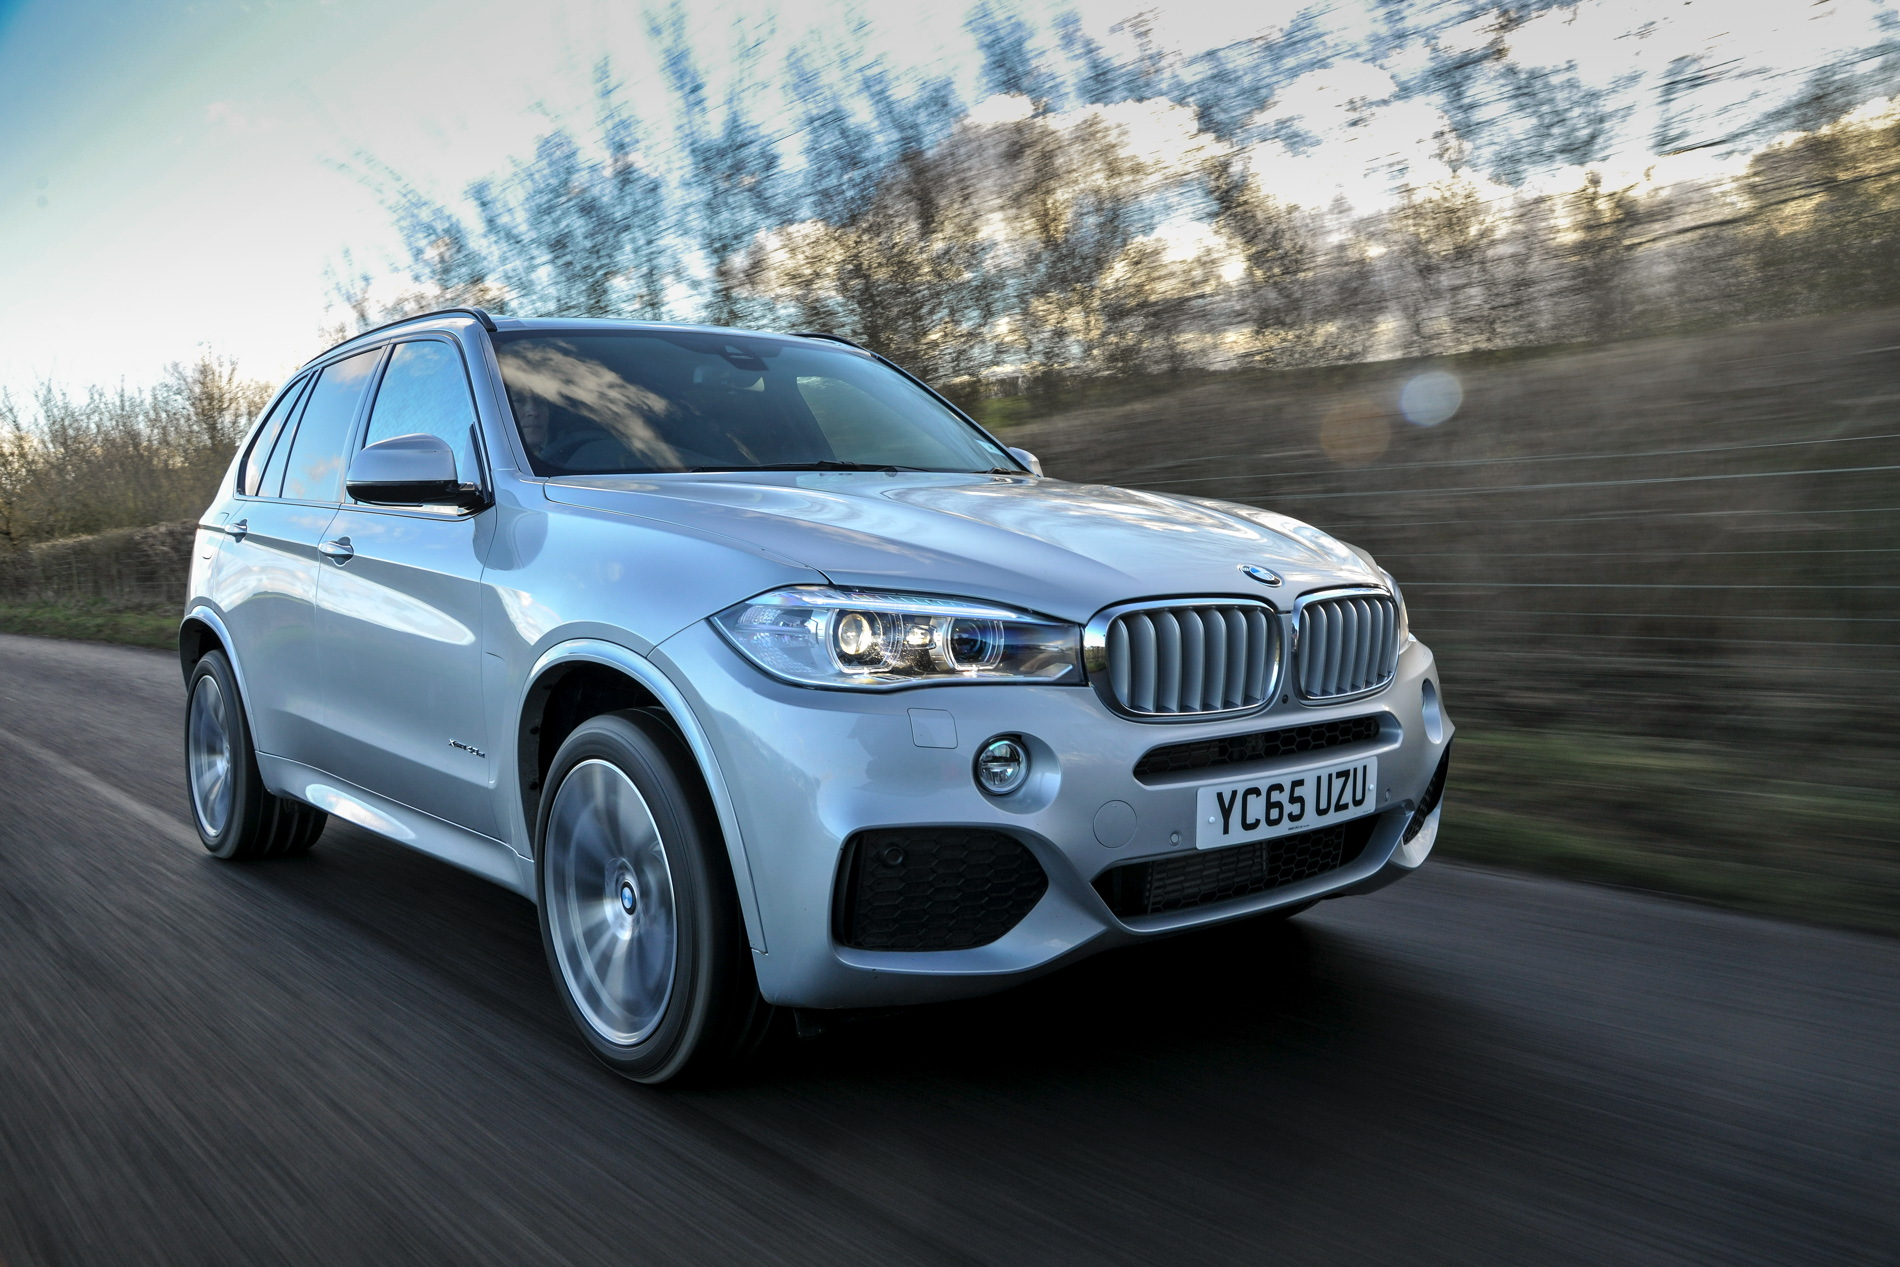 Bmw X5 Xdrive40e Vs Volvo Xc90 T8 Twin Engine